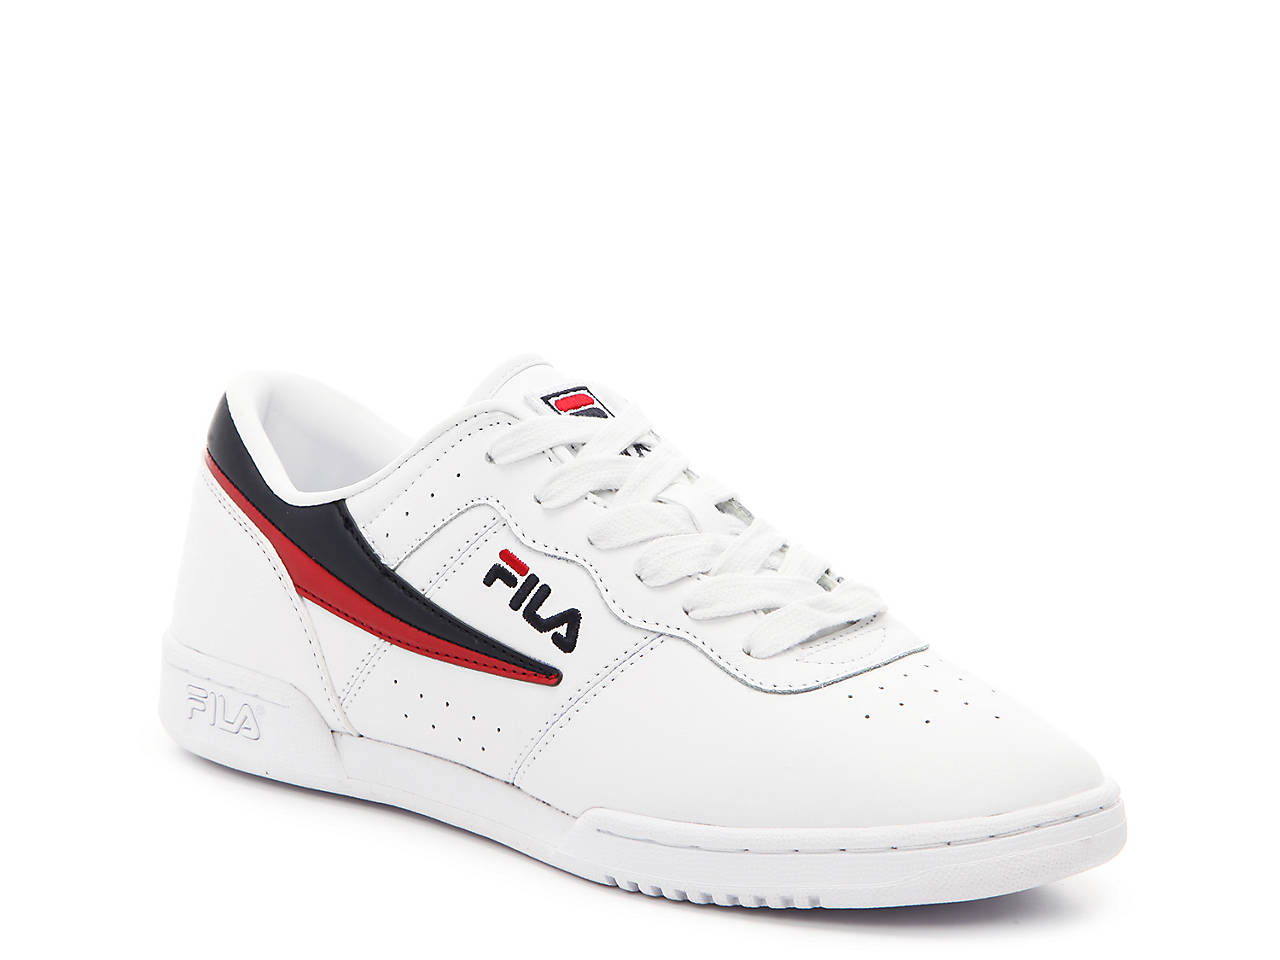 Fila Original Fitness Sneaker - Women s Women s Shoes  530196b58